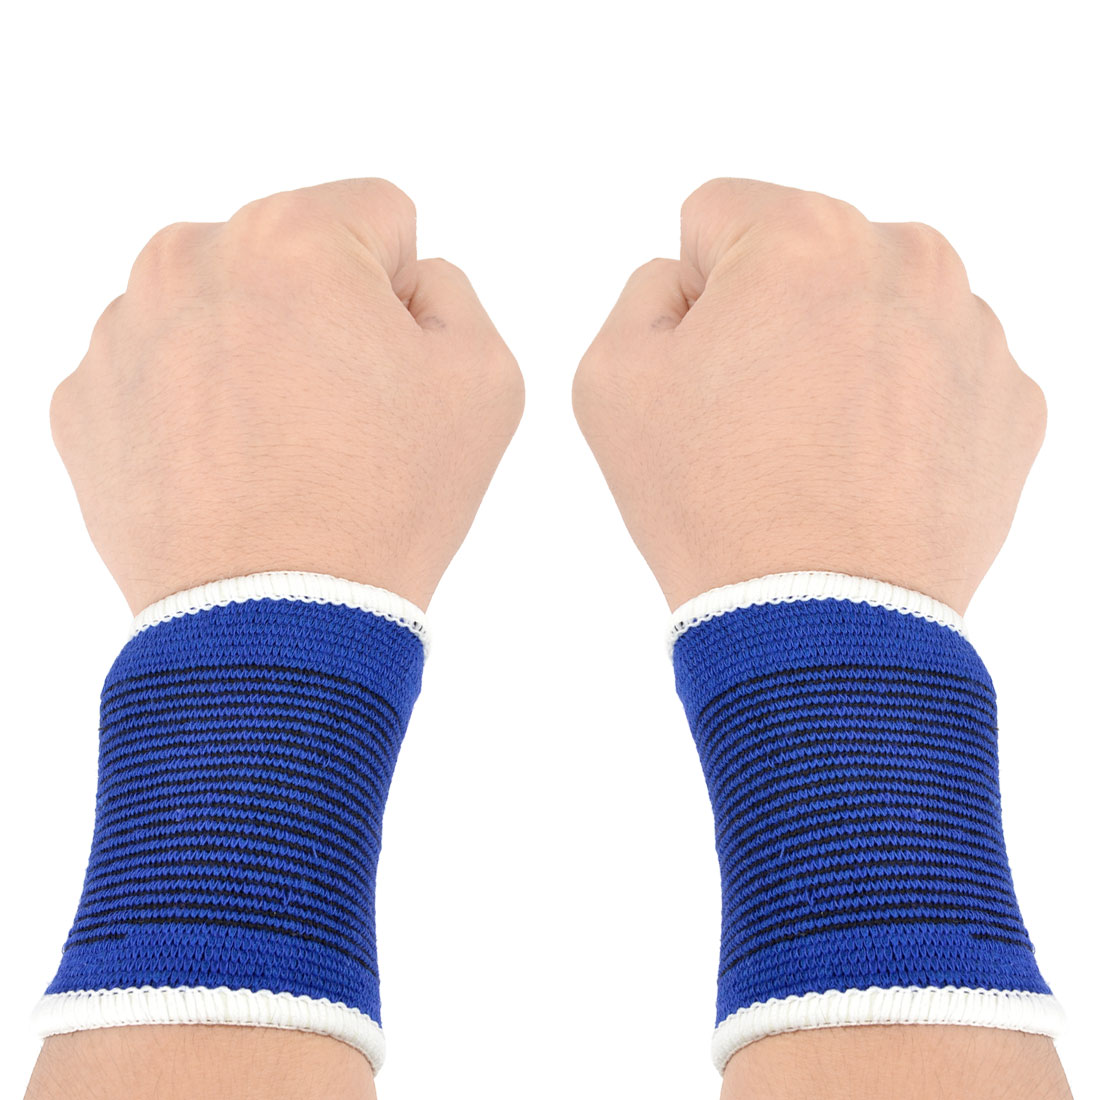 Sports Cotton Blends Pullover Recovery Wrist Support Protectors Wrap Blue Pair